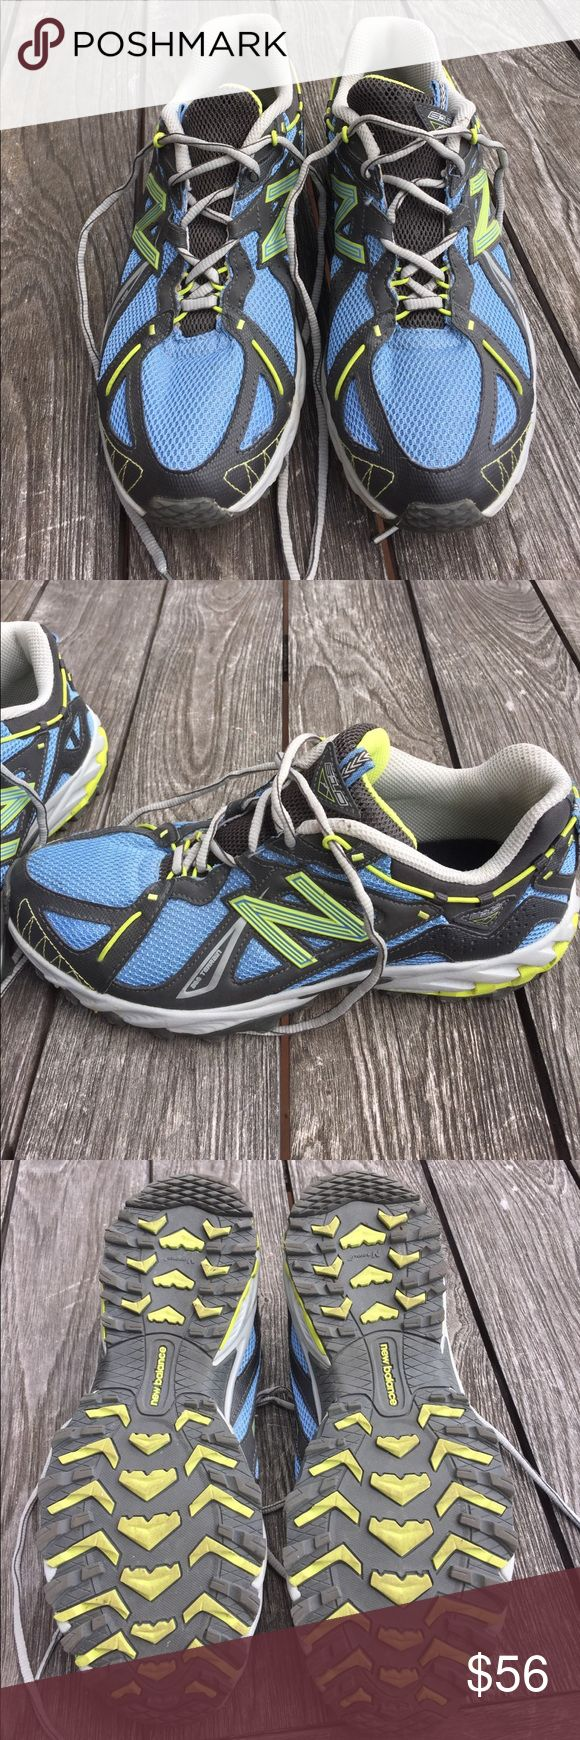 New balance trail sneakers Great condition, only worn once! New Balance Shoes Sneakers